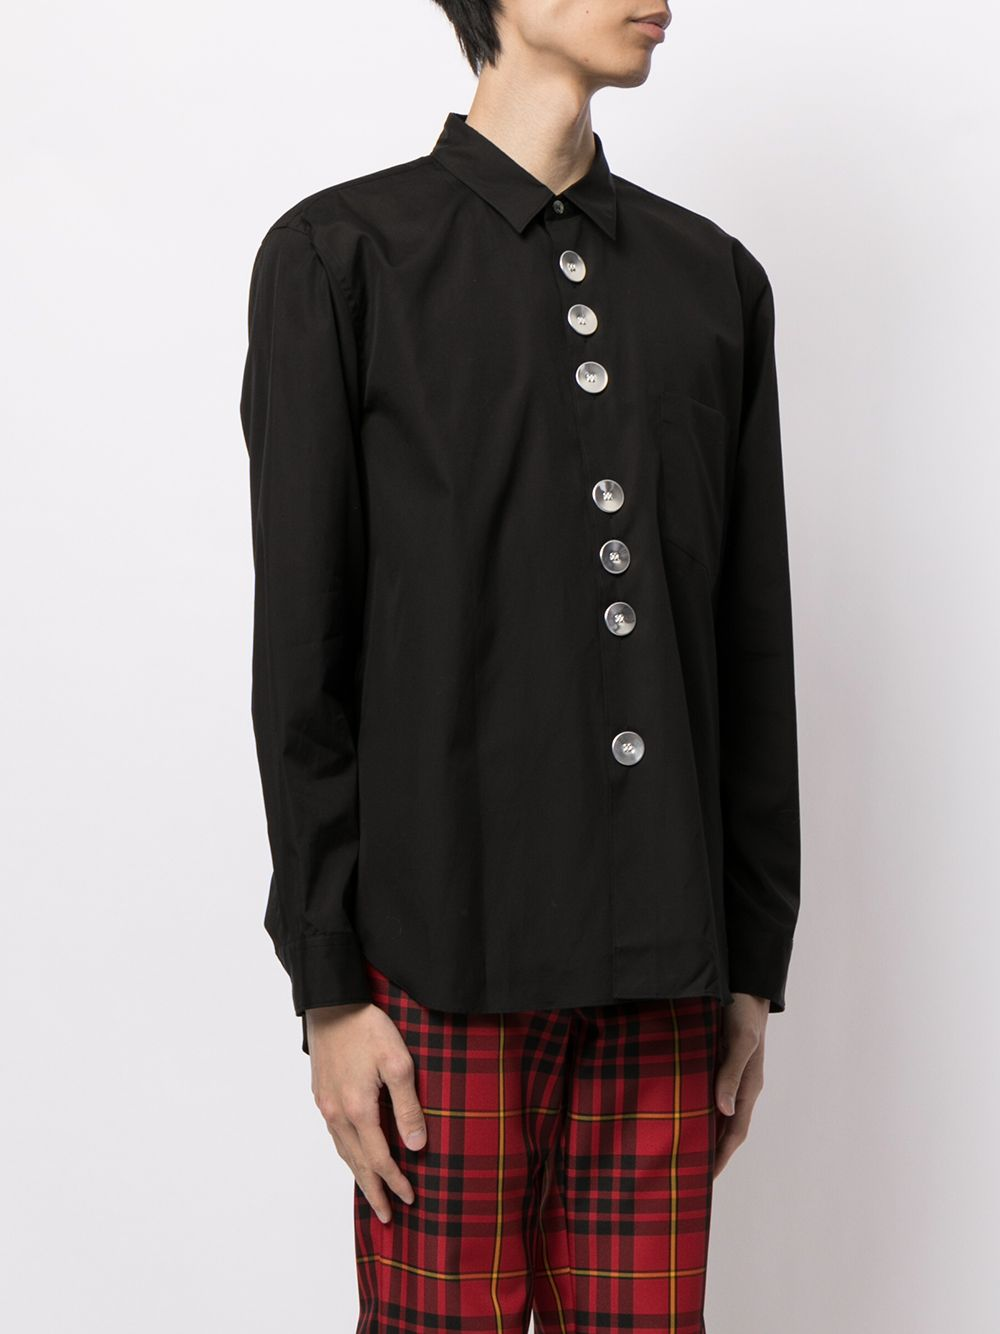 COMME DES GARCONS HOMME PLUS MEN OVERSIZED BUTTON SHIRT